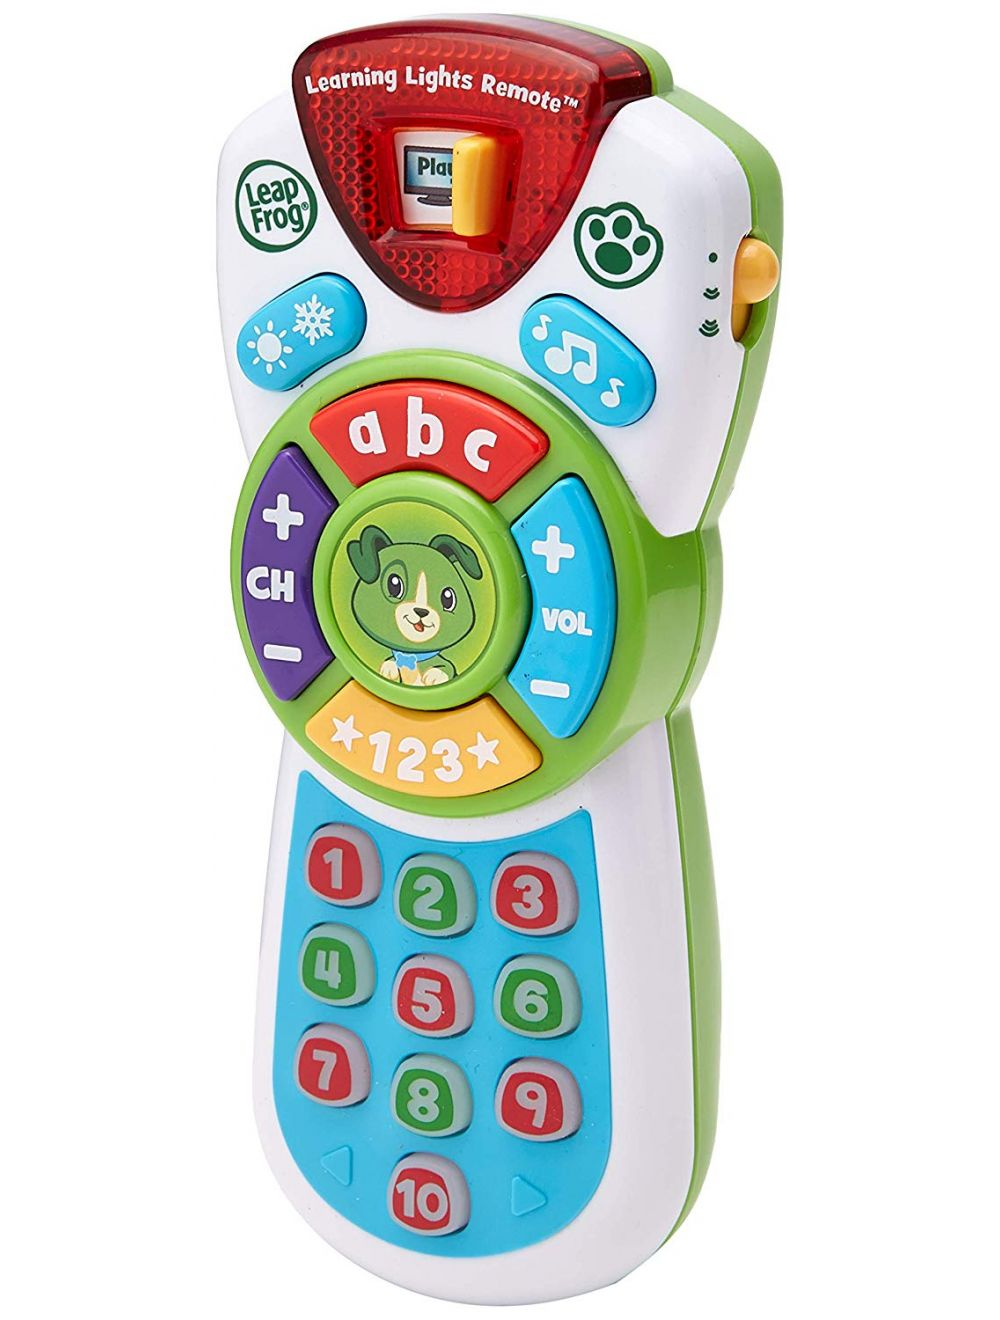 LeapFrog Scout's Learning Light Remote